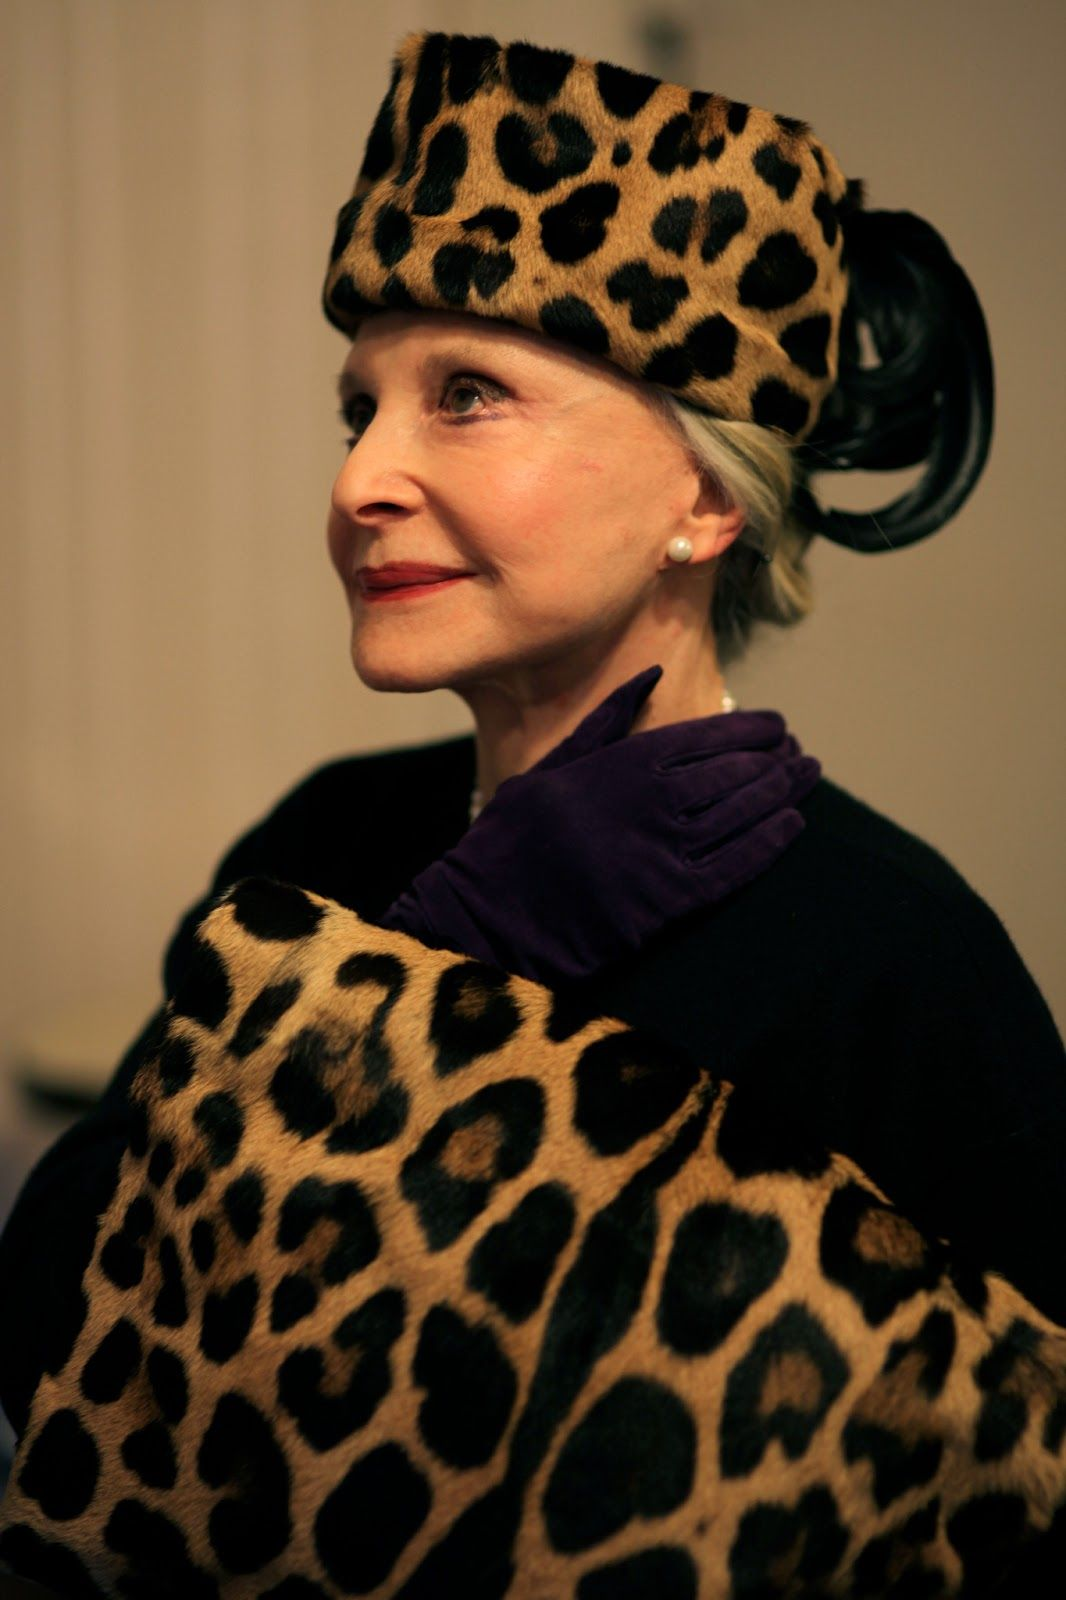 80-year-old Joyce Carpati